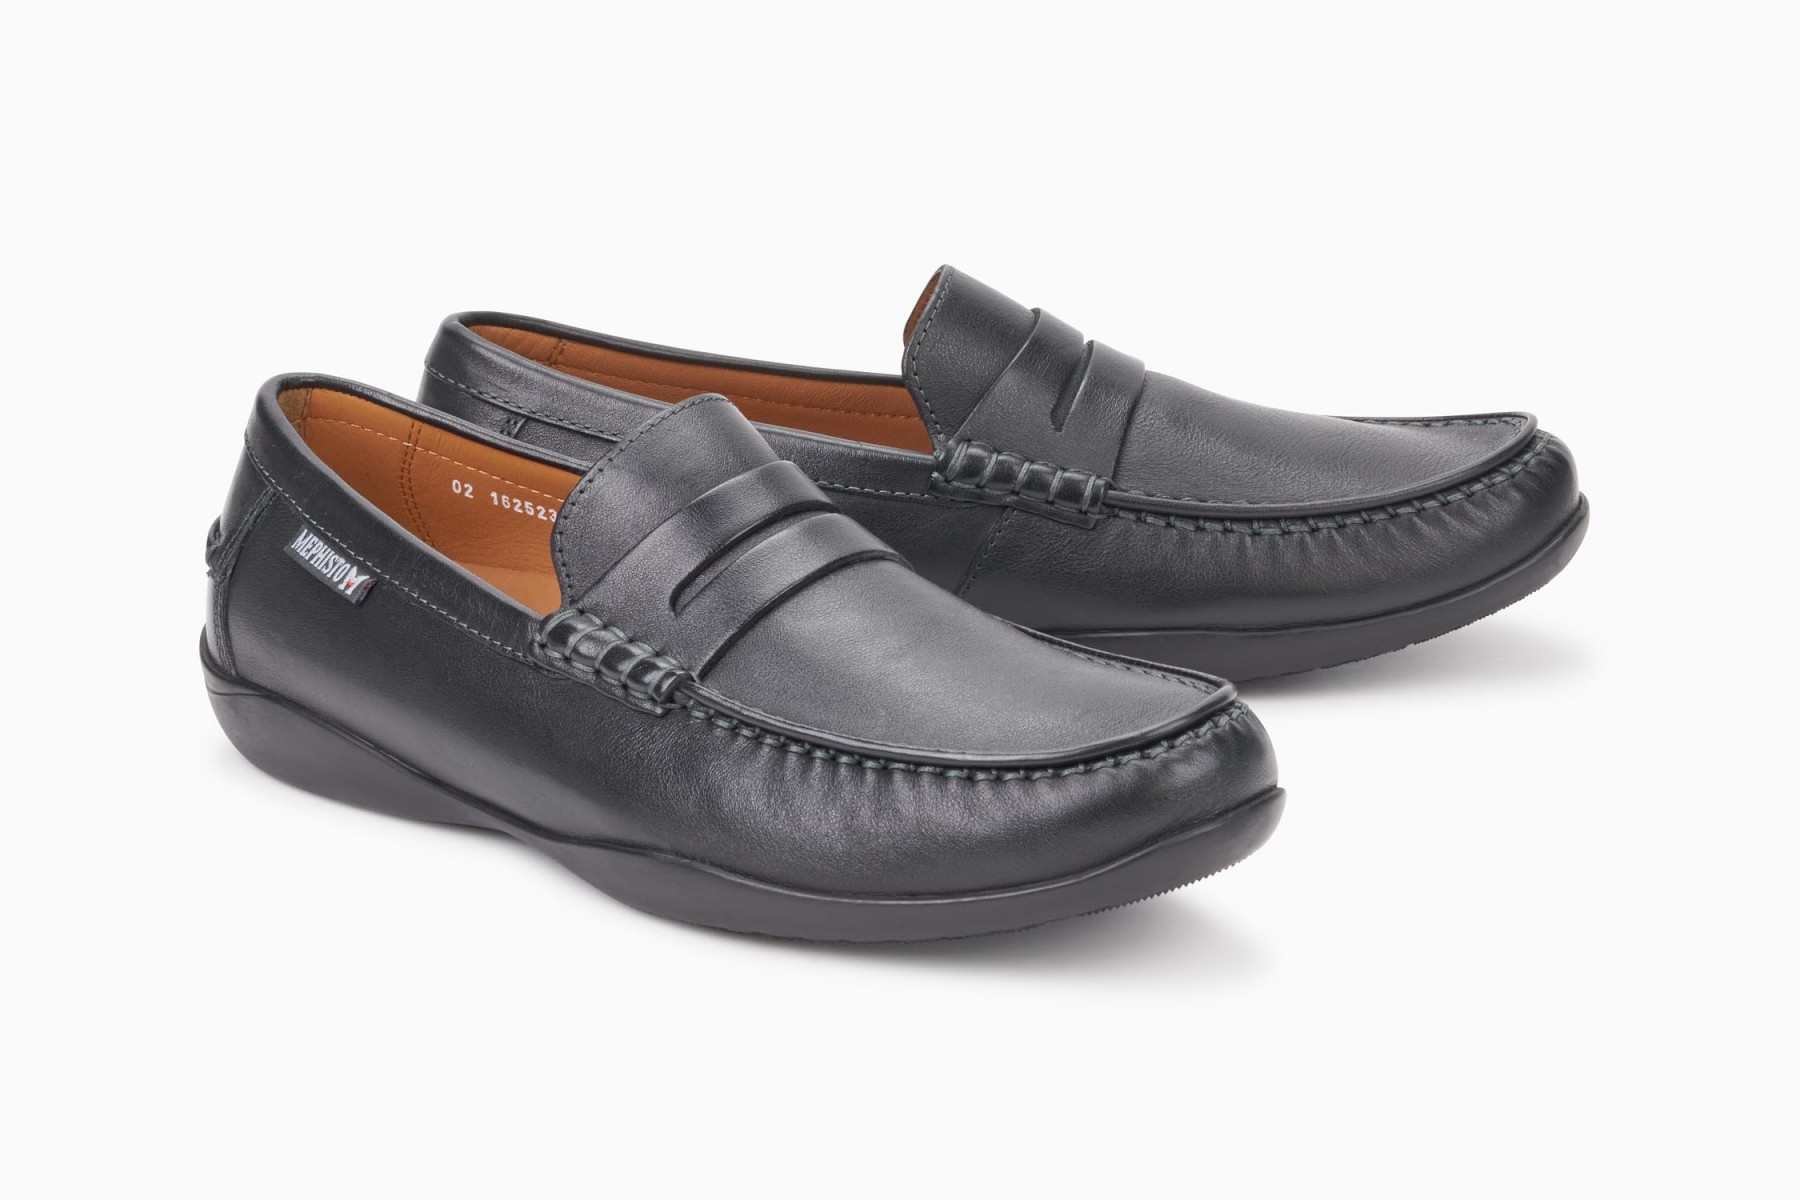 265b0a5c149 IGOR Slip-on - MEPHISTO Men's Loafers and Slip-ons | Smooth leather ...